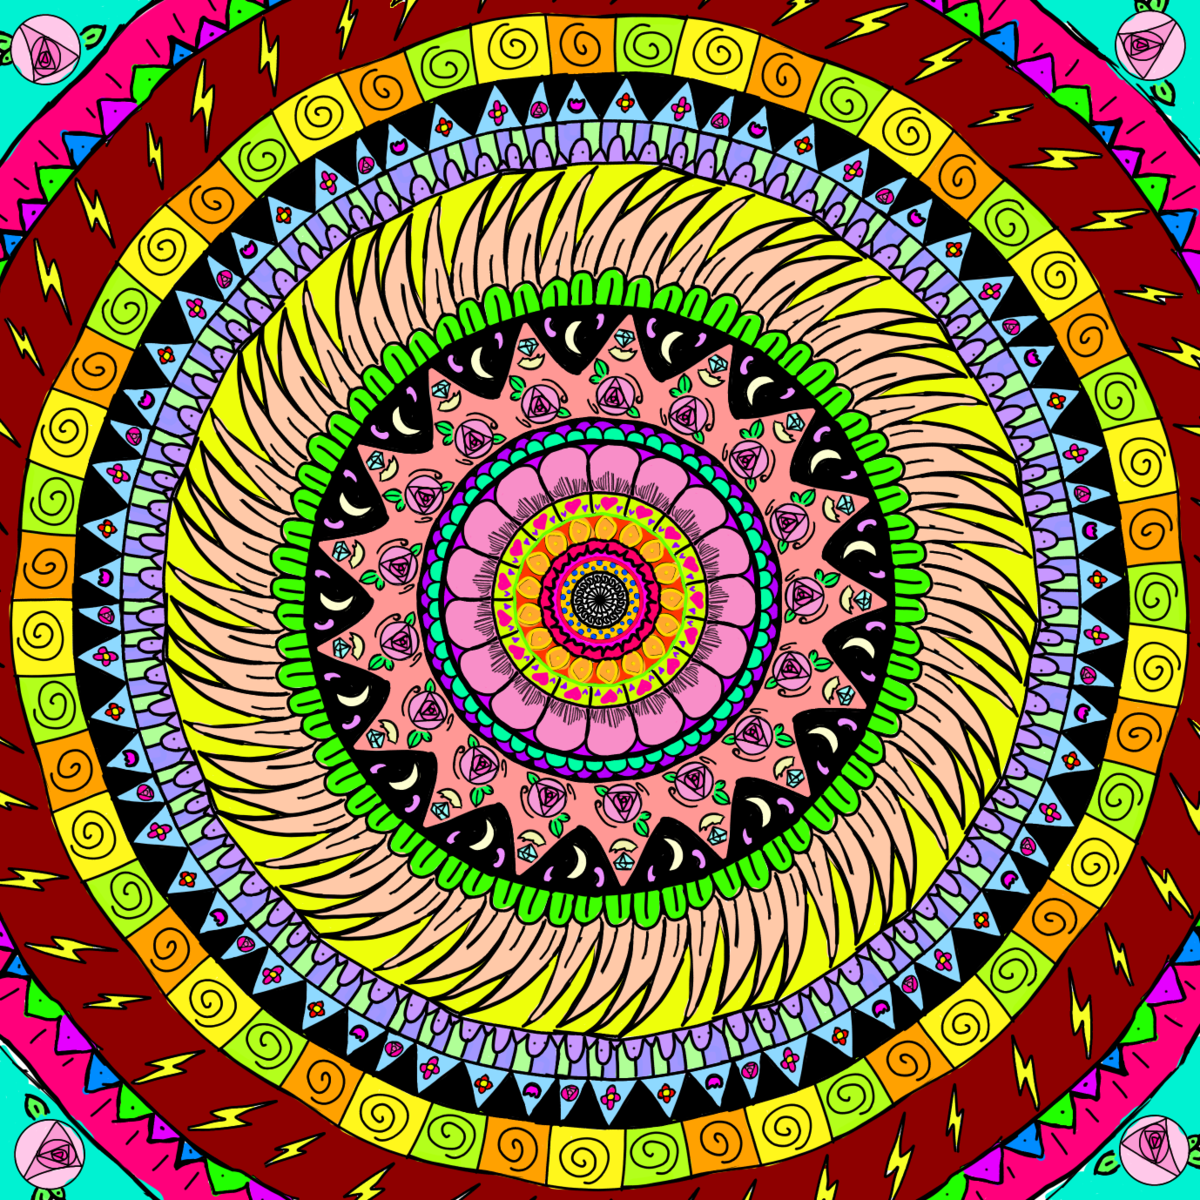 An elementary school student's intricate mandala drawing, a symmetrical and highly detailed circular design